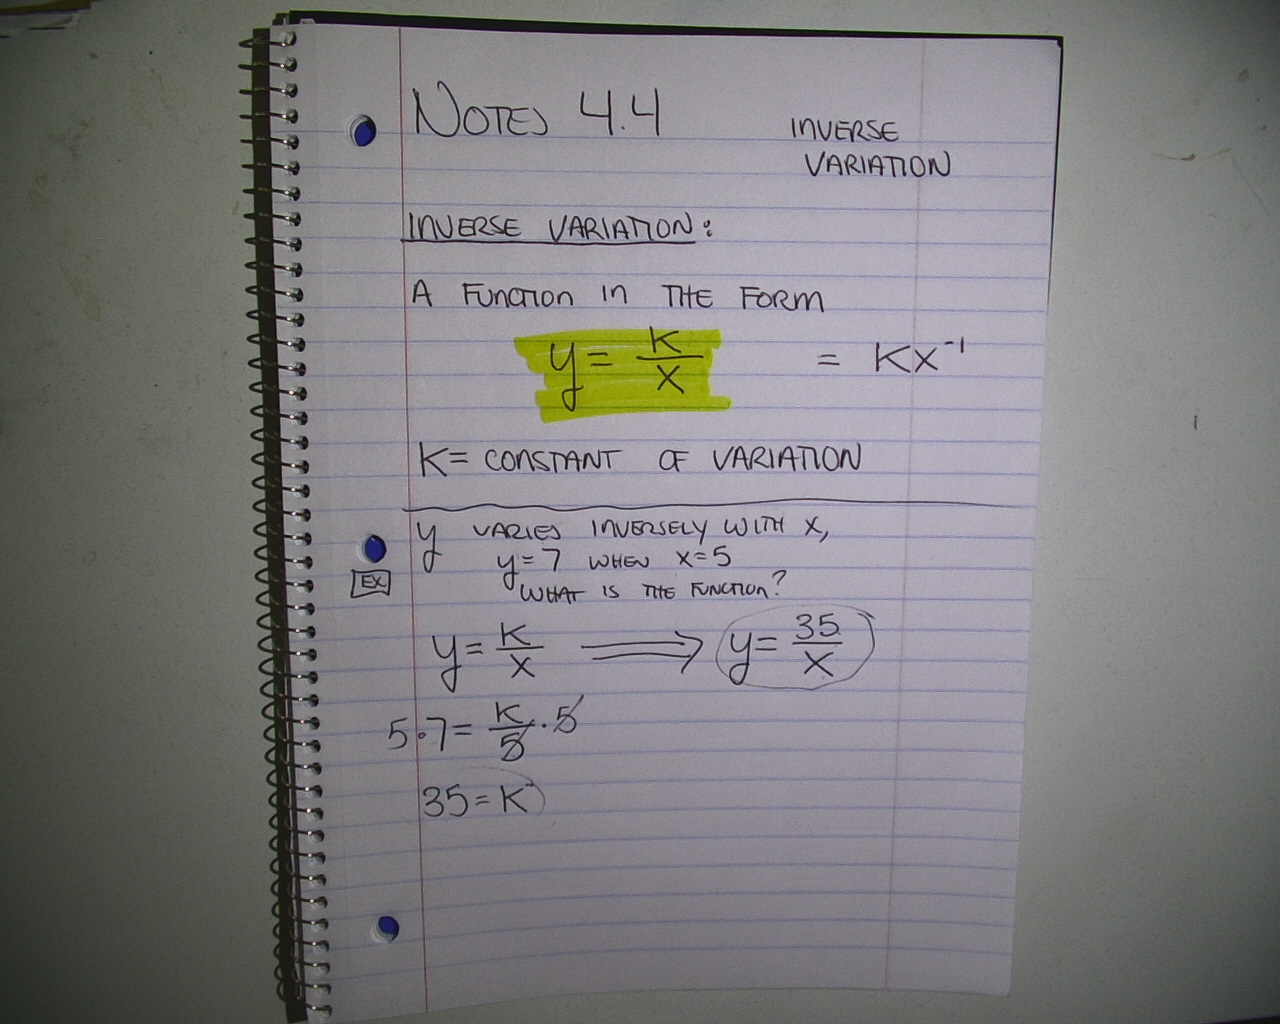 Mr Brzenski S Math Class Notes 4 4 And 4 5 Direct And